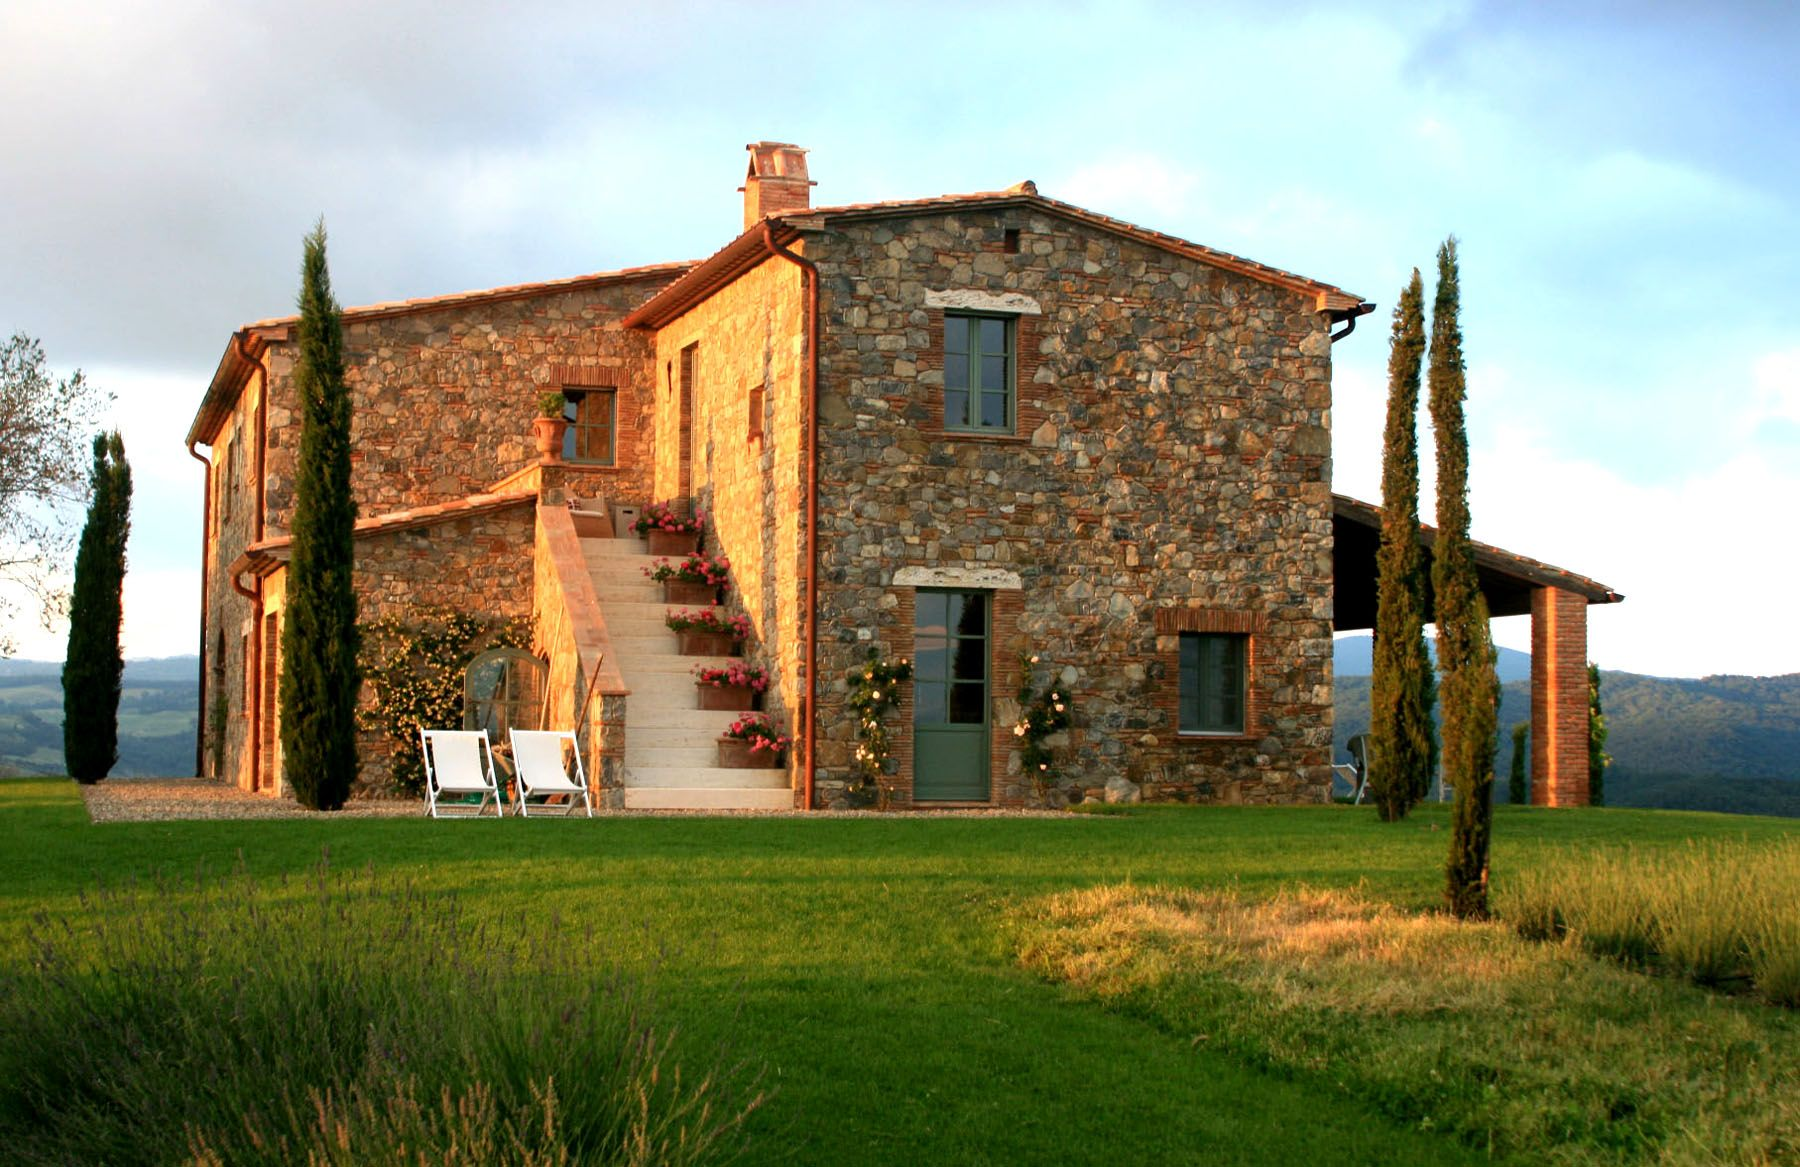 20 gorgeous homes in tuscany italy joinery foundation for Tuscany houses